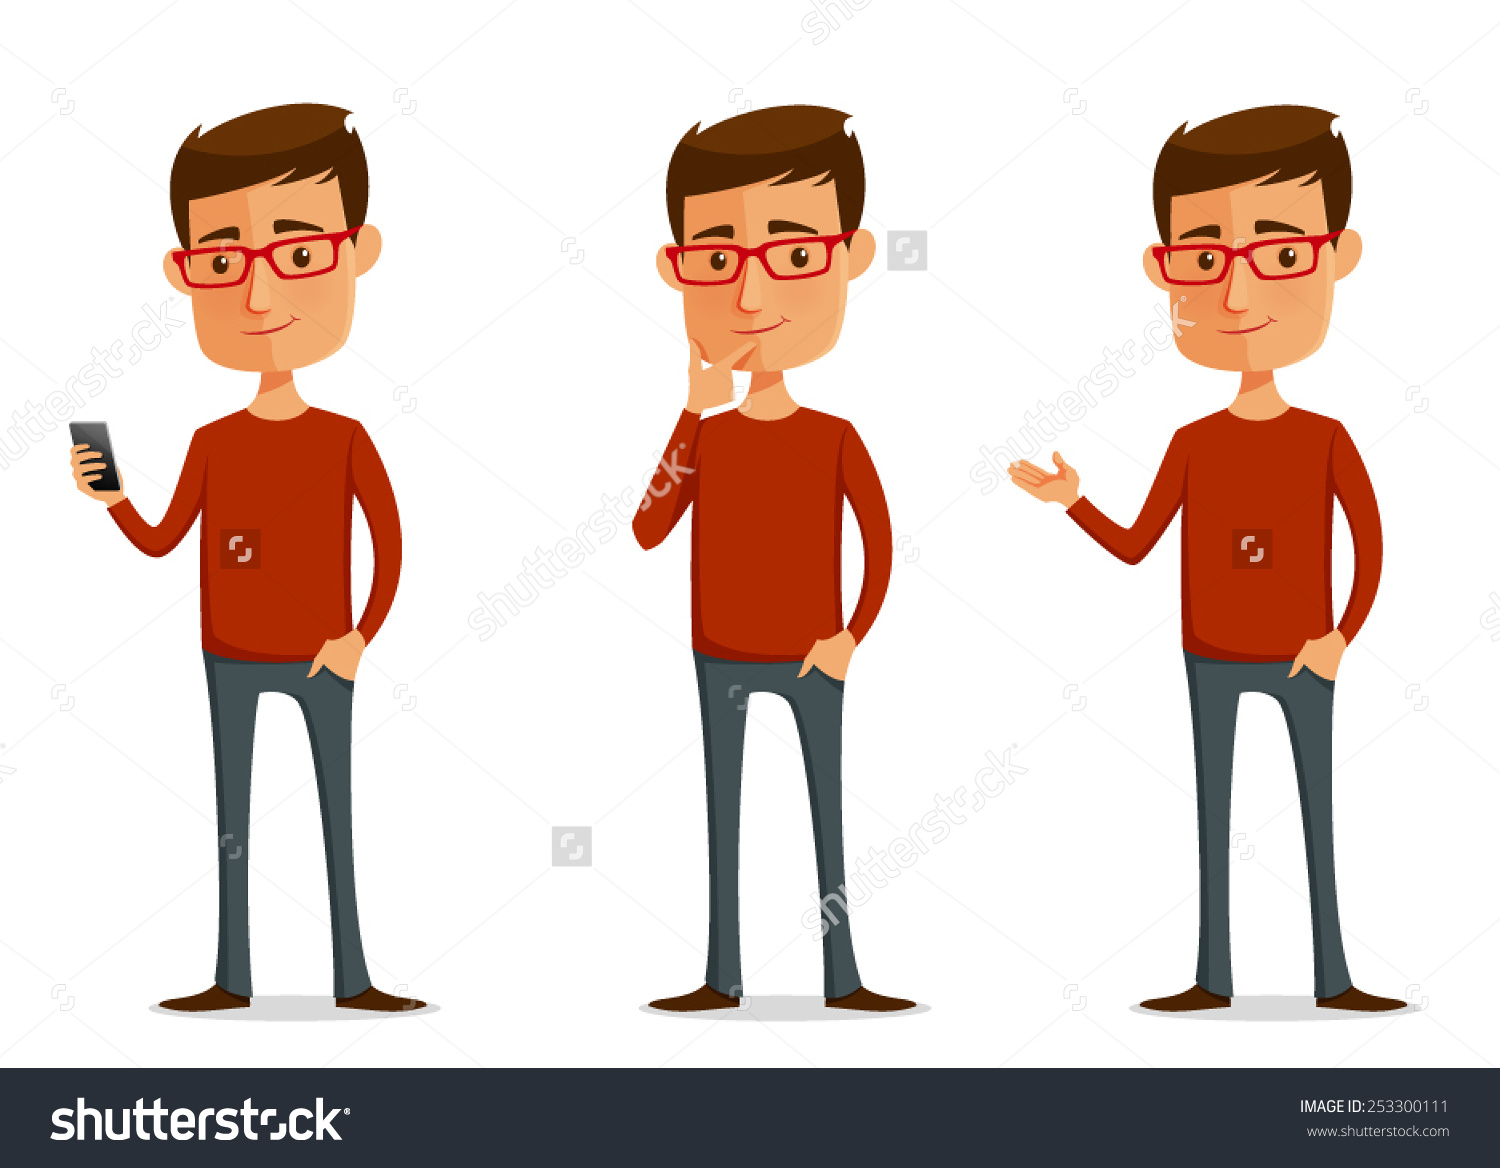 Funny Cartoon Guy Glasses Various Poses Stock Vector 253300111.